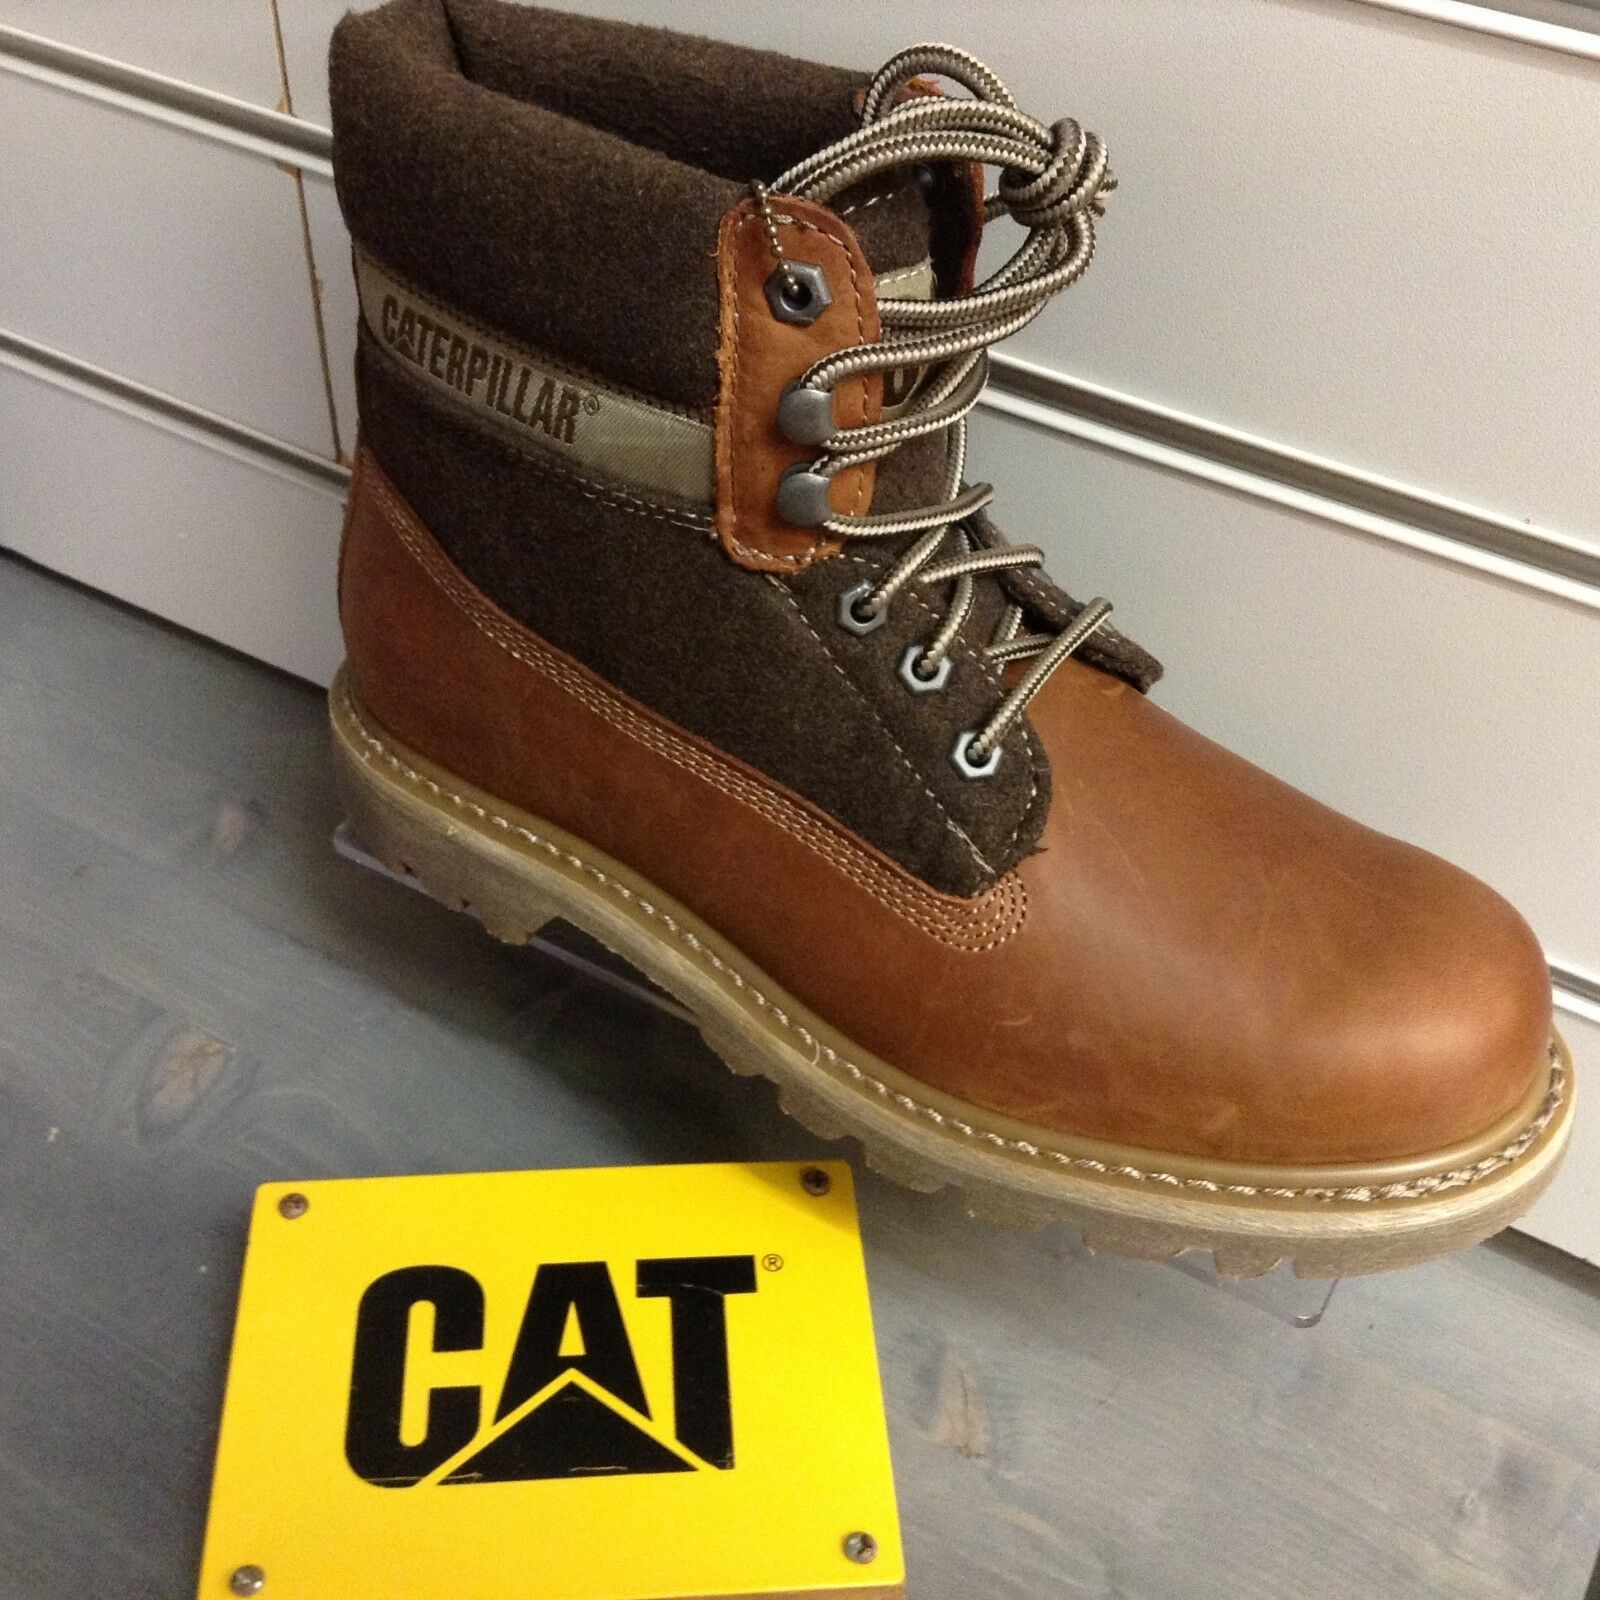 CATERPILLAR COLORADO WOOL GENTS LEATHER BOOTS WALKING WALKING WALKING WORK MENS WINTER CATS NEW 5cc399